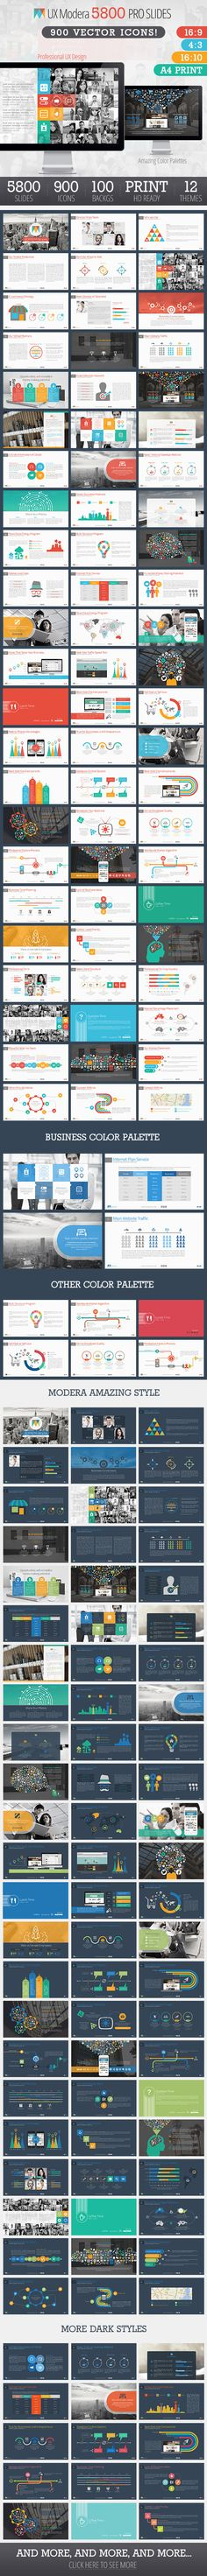 http://graphicriver.net/item/ux-modera-presentation-template/8837339?ref=presemedia&ref=presemedia&clickthrough_id=354902273&redirect_back=true